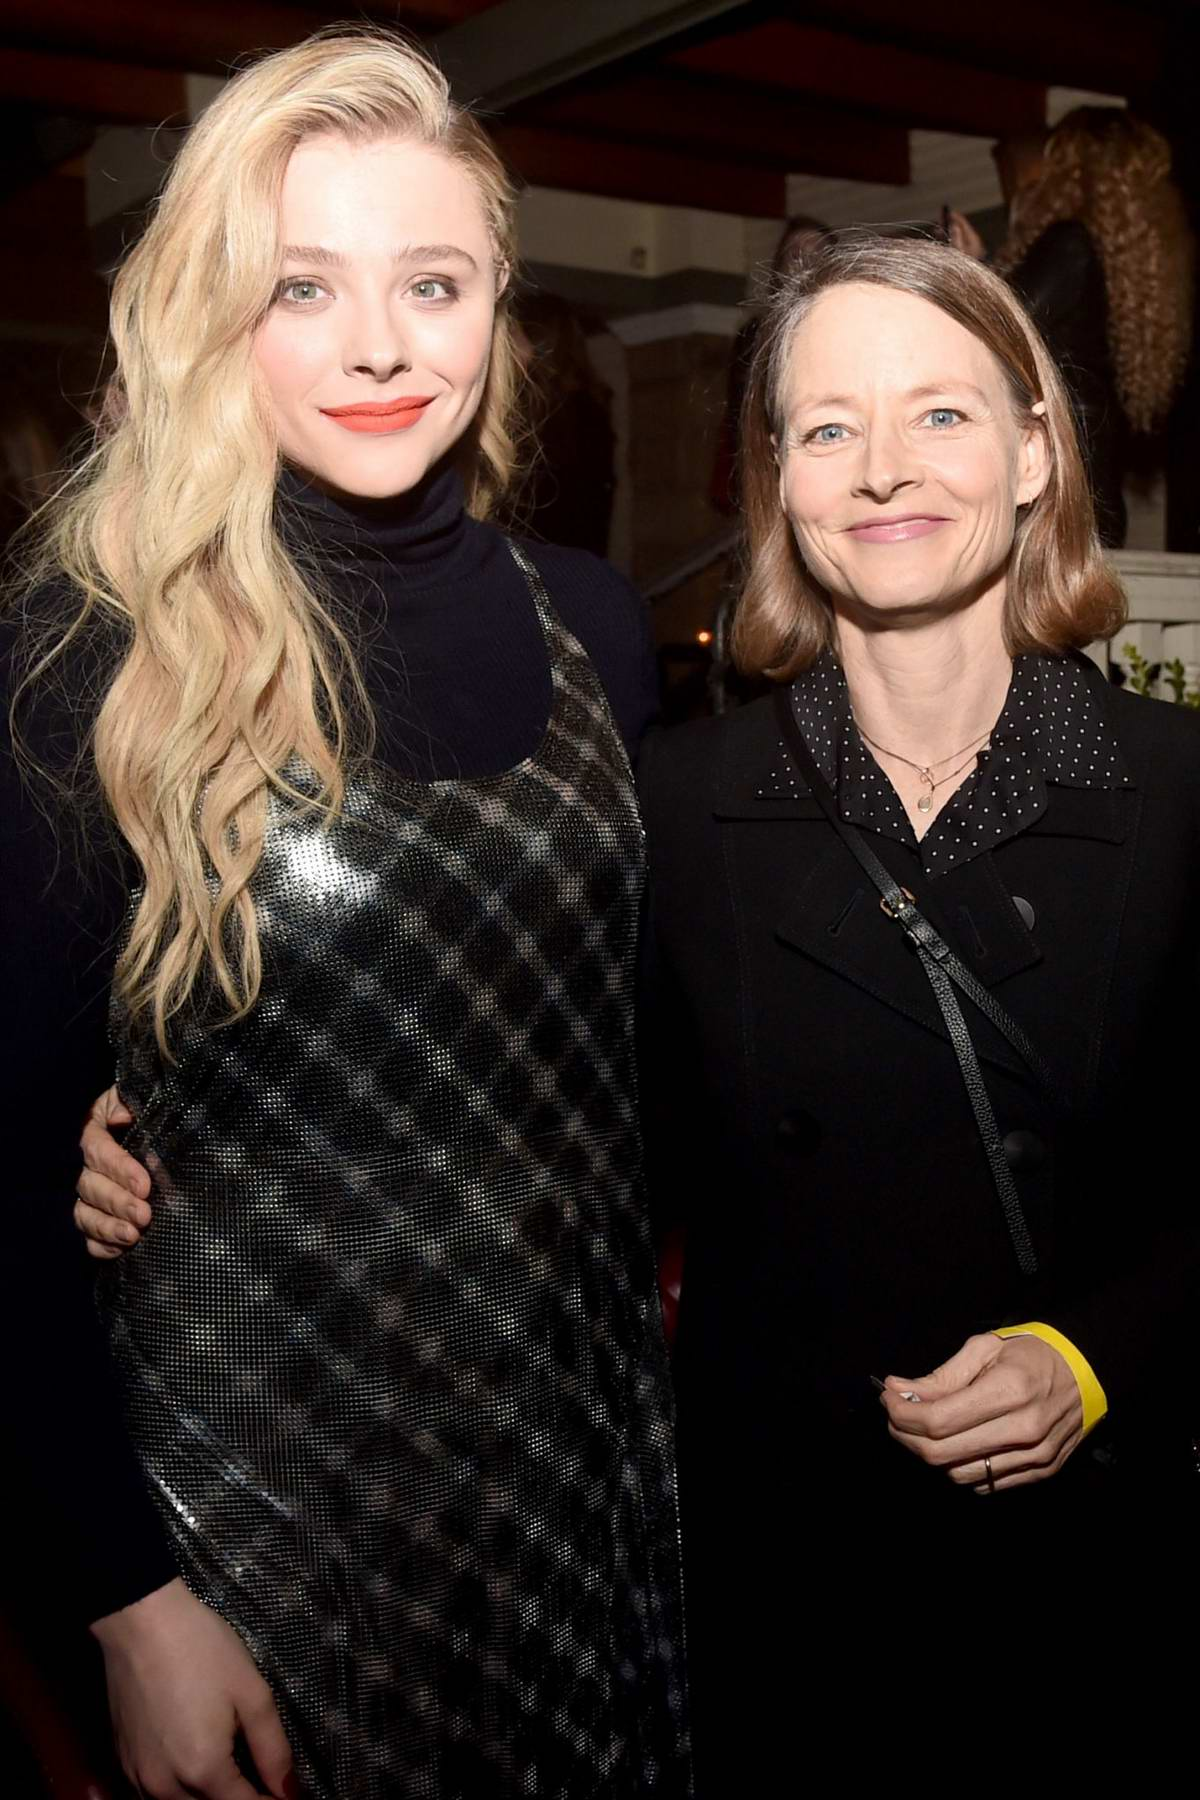 Chloe Grace Moretz attends the premiere after party of 'Greta' in Hollywood, California